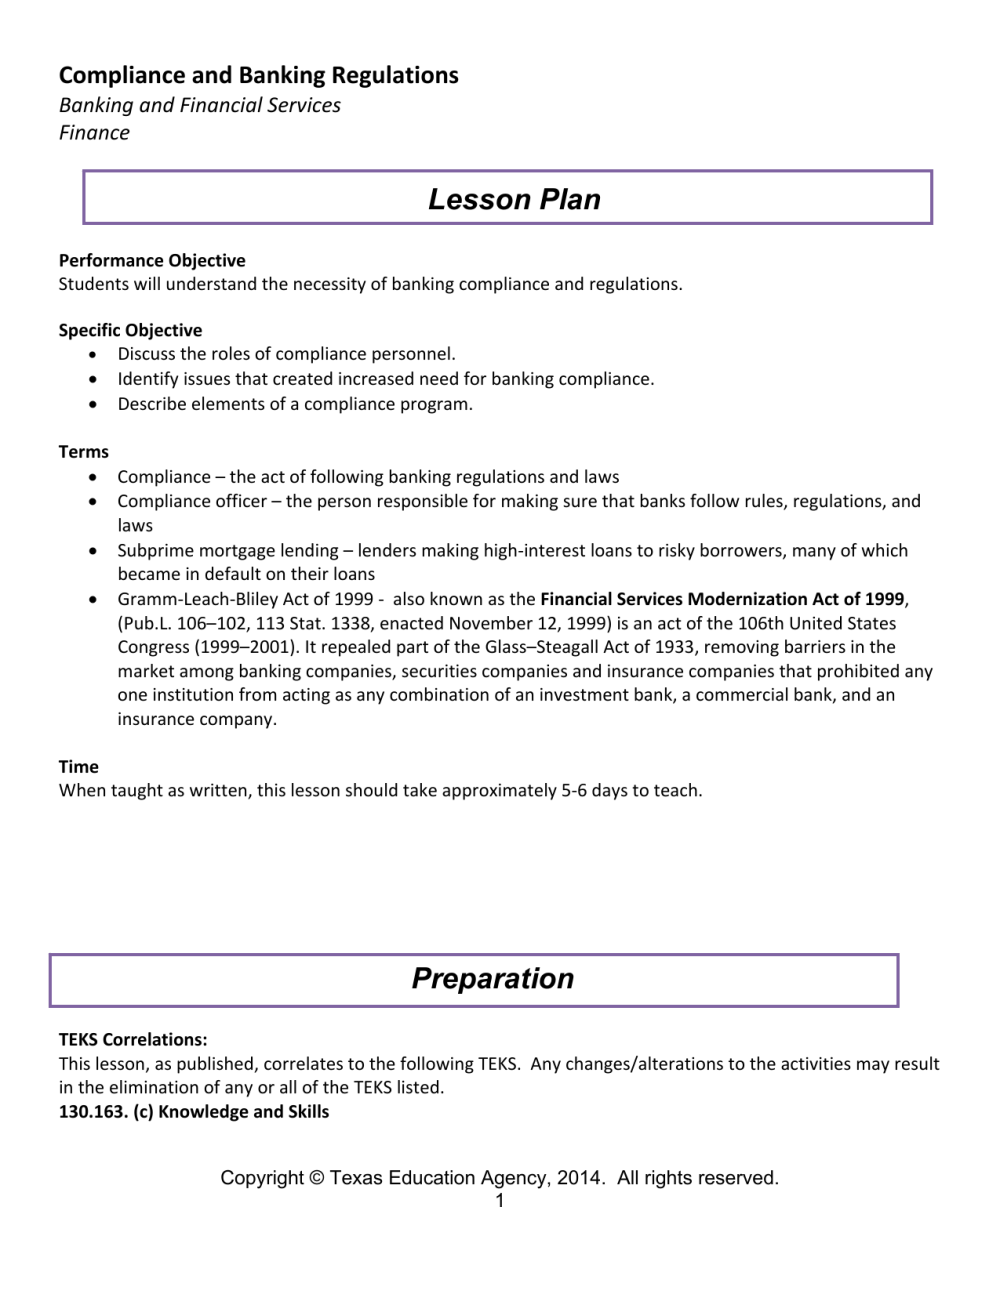 medium resolution of lesson plan compliance and banking regulations banking and financial services finance